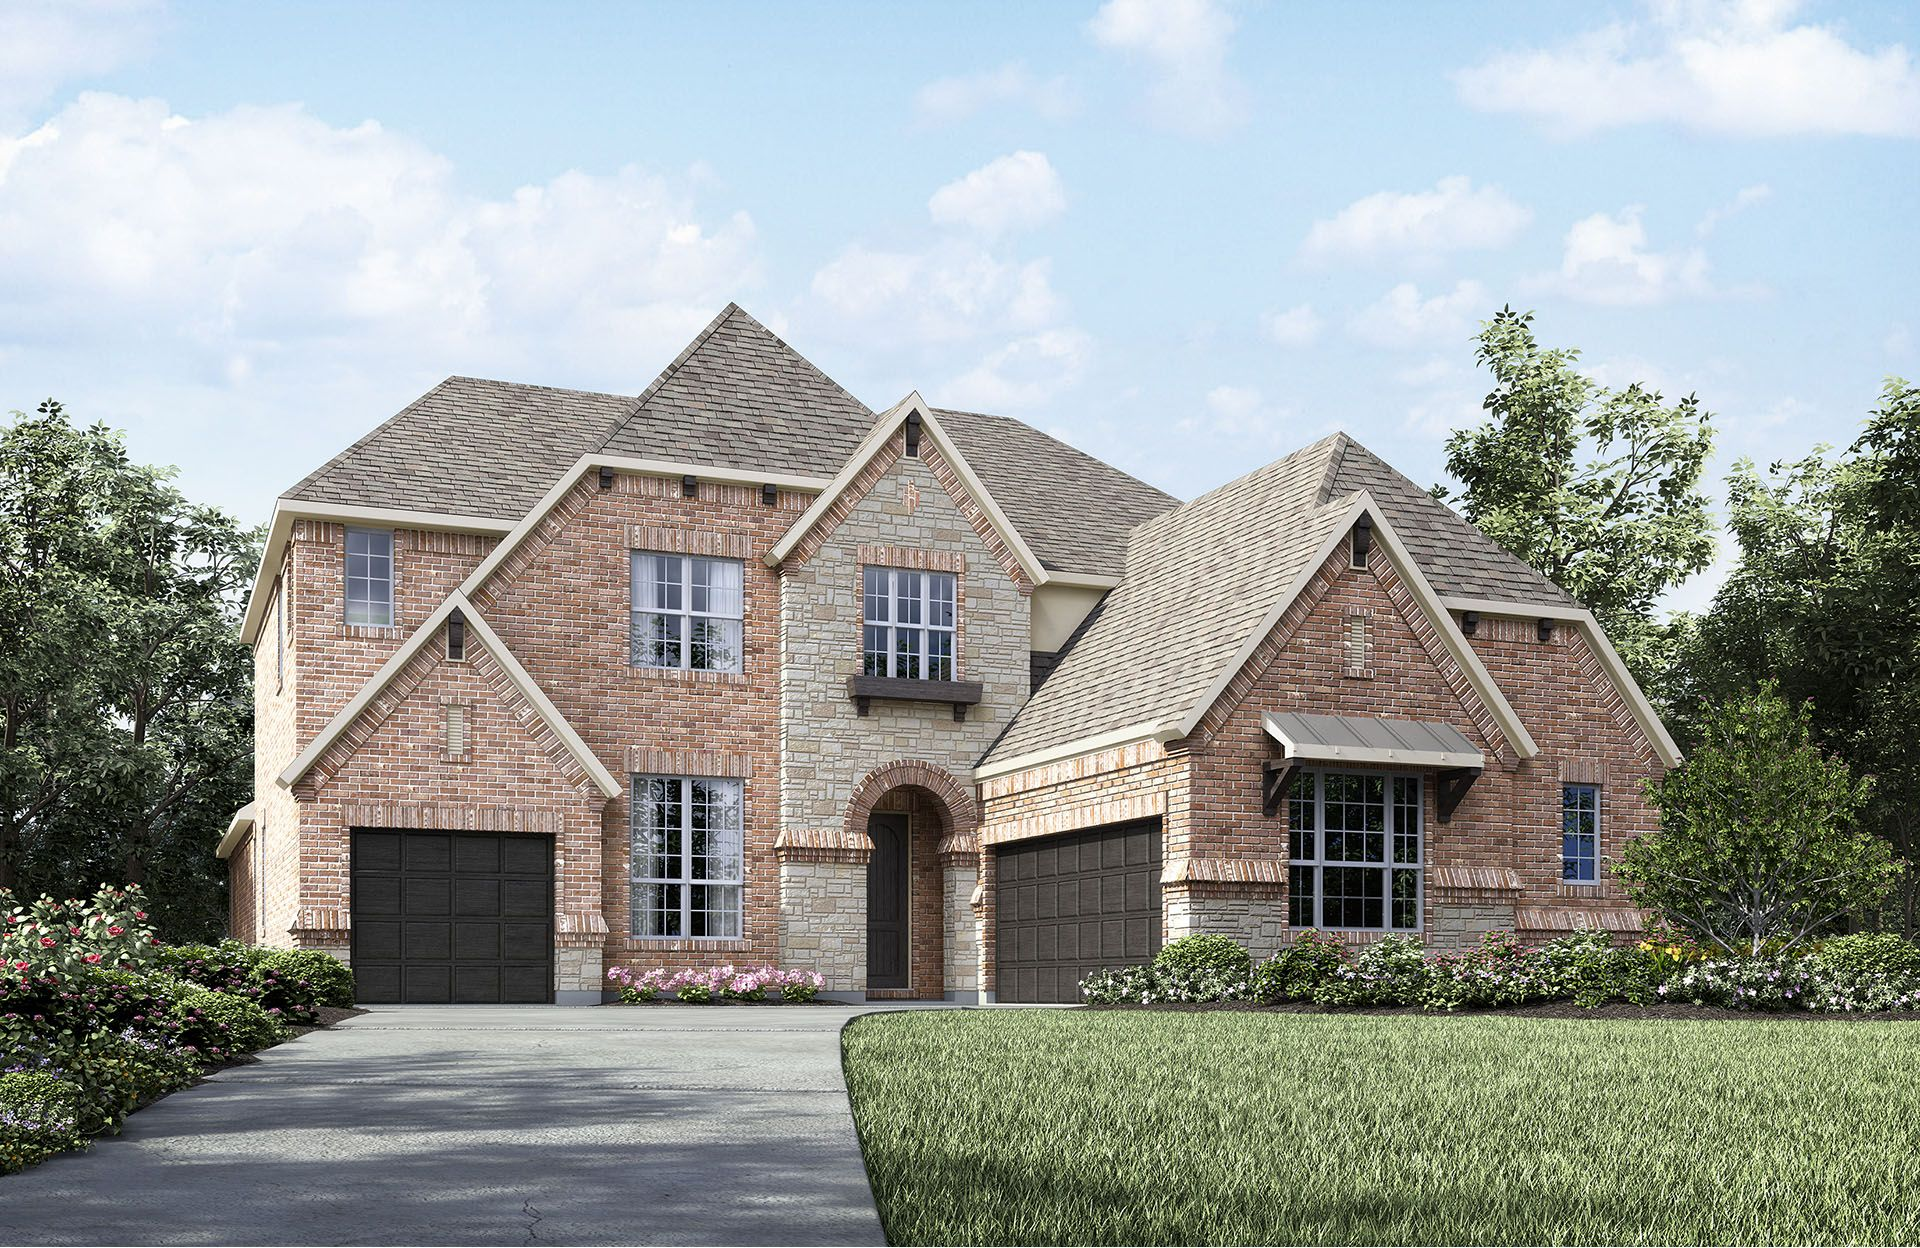 Single Family for Sale at Viridian - Bracken Iii 1344 Viridian Park Lane Arlington, Texas 76005 United States